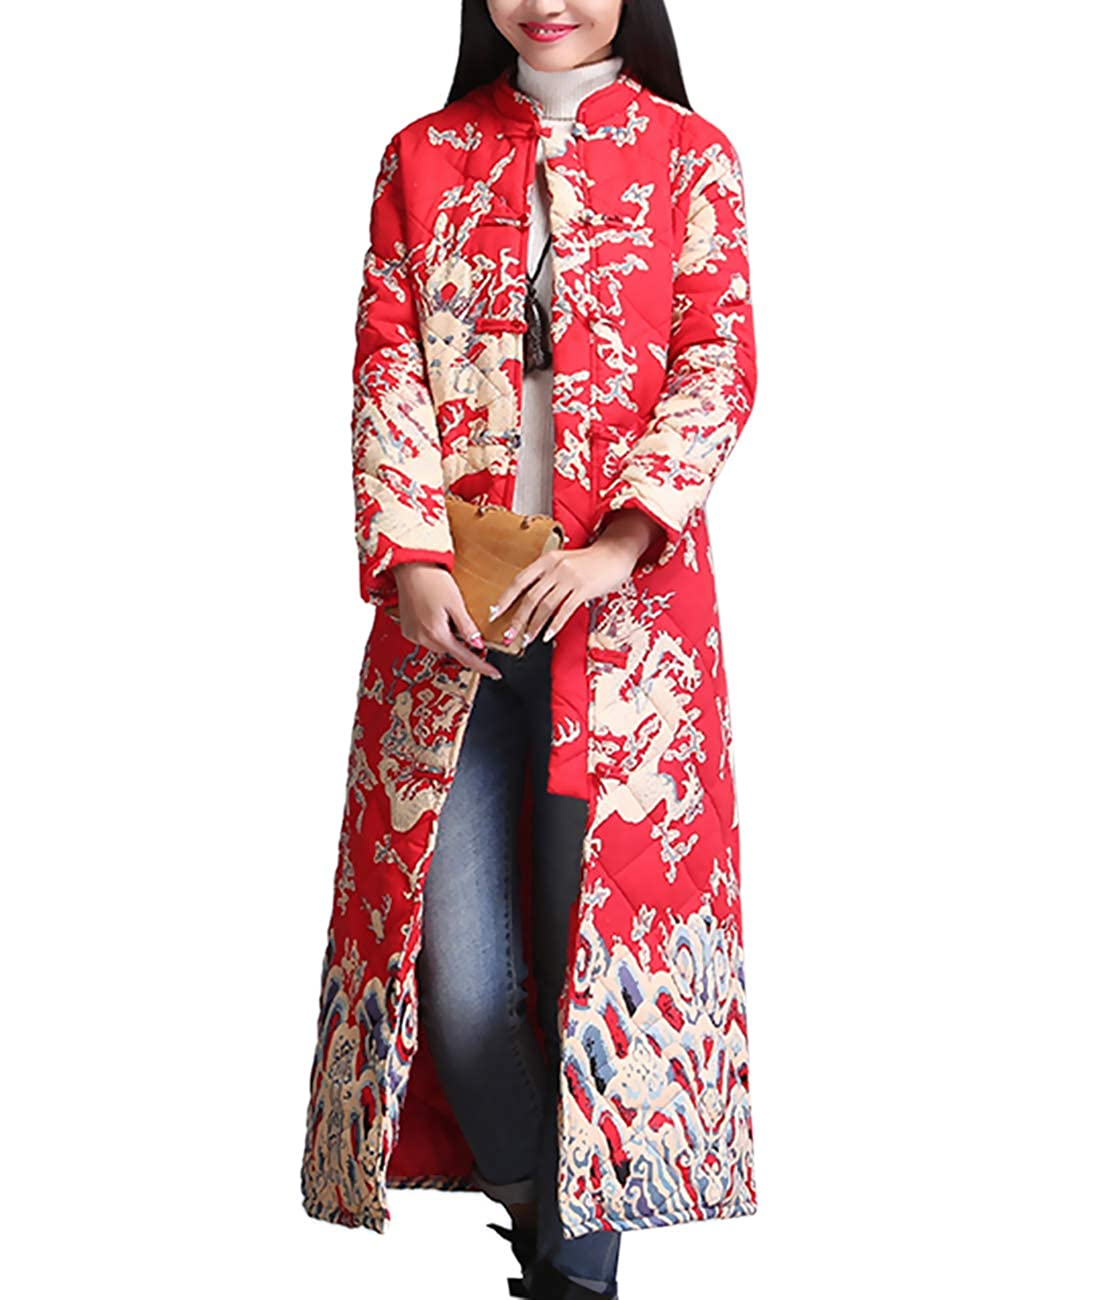 Women's Traditional Chinese Qipao Long Red Quilted Jacket